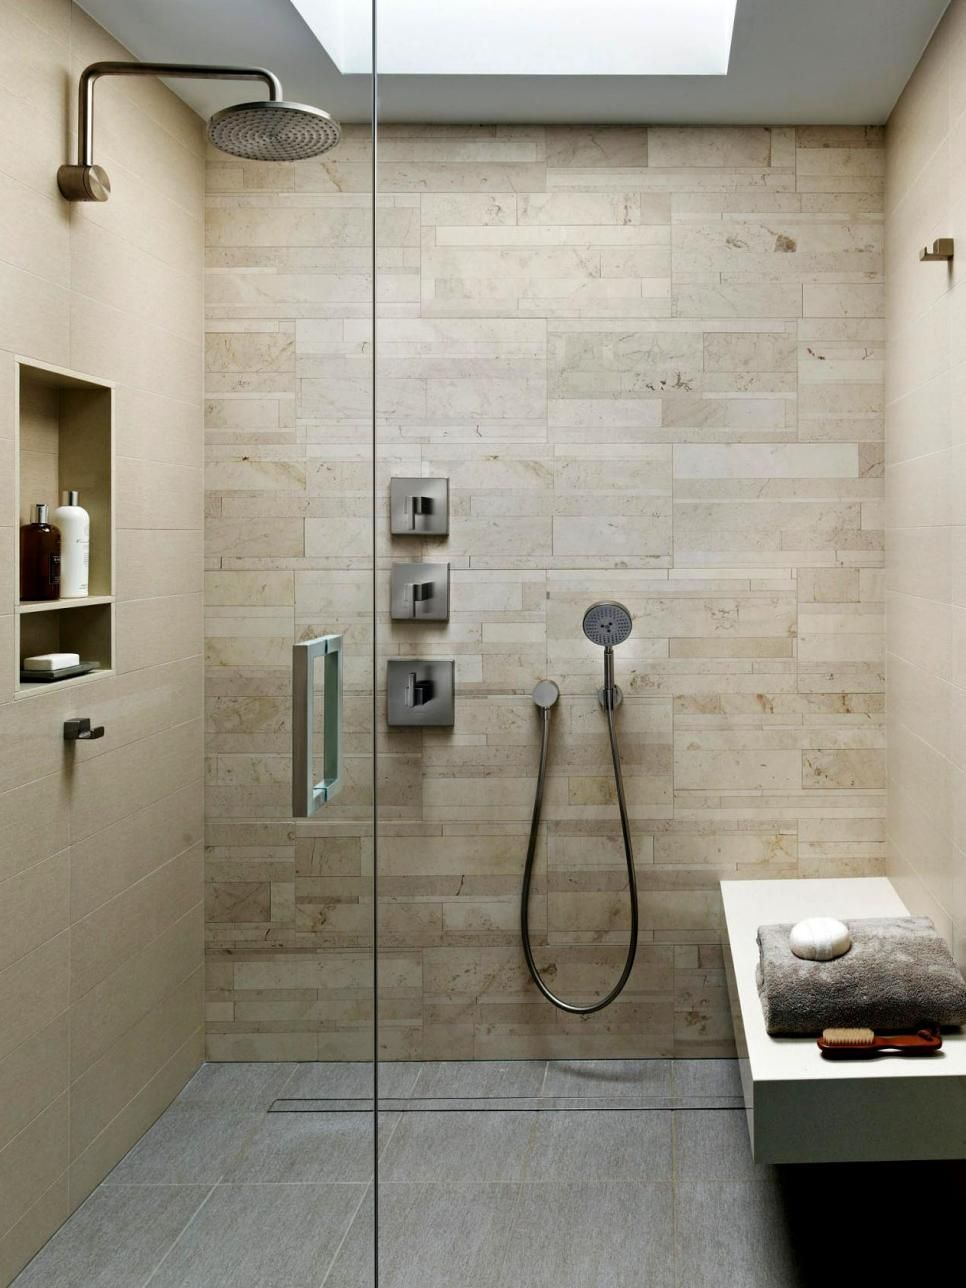 Bathroom Tiles Trends 2015 10 best bathroom remodeling trends | handheld, pets and bathroom